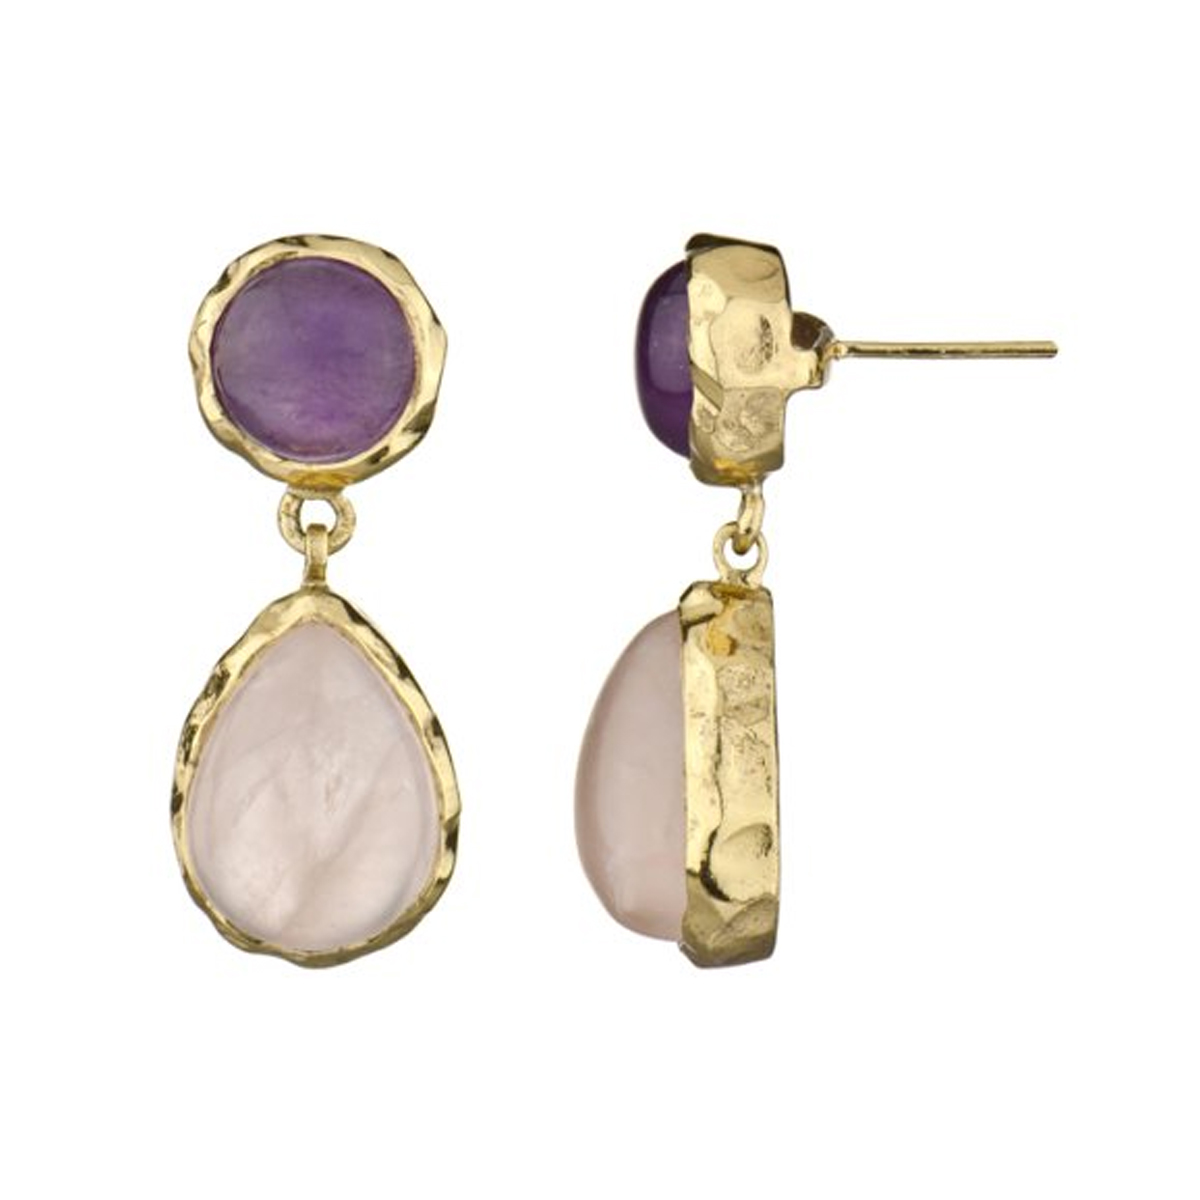 Earrings  Imitation Rose Quartz And Amethyst Roll Off Image To Close  Zoom Window